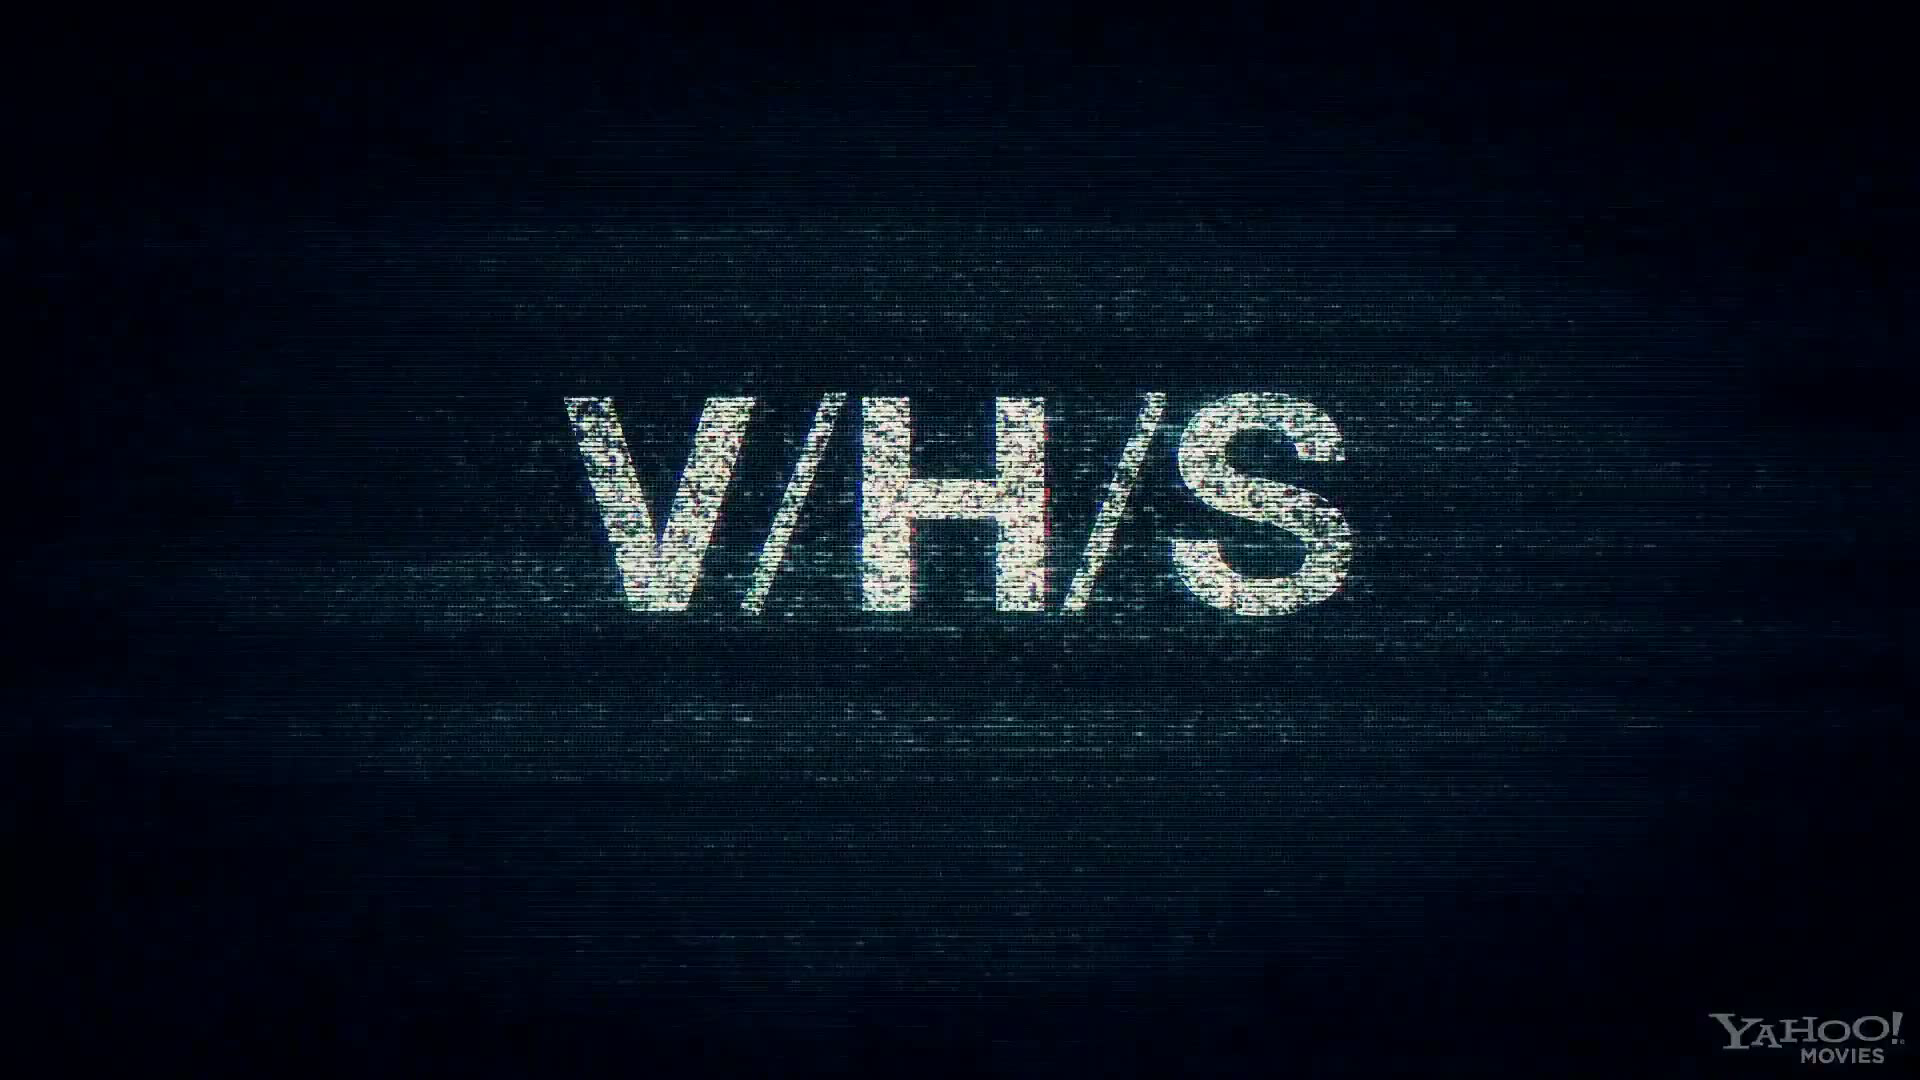 The final comic-book style v/h/s poster - horrormoviesca